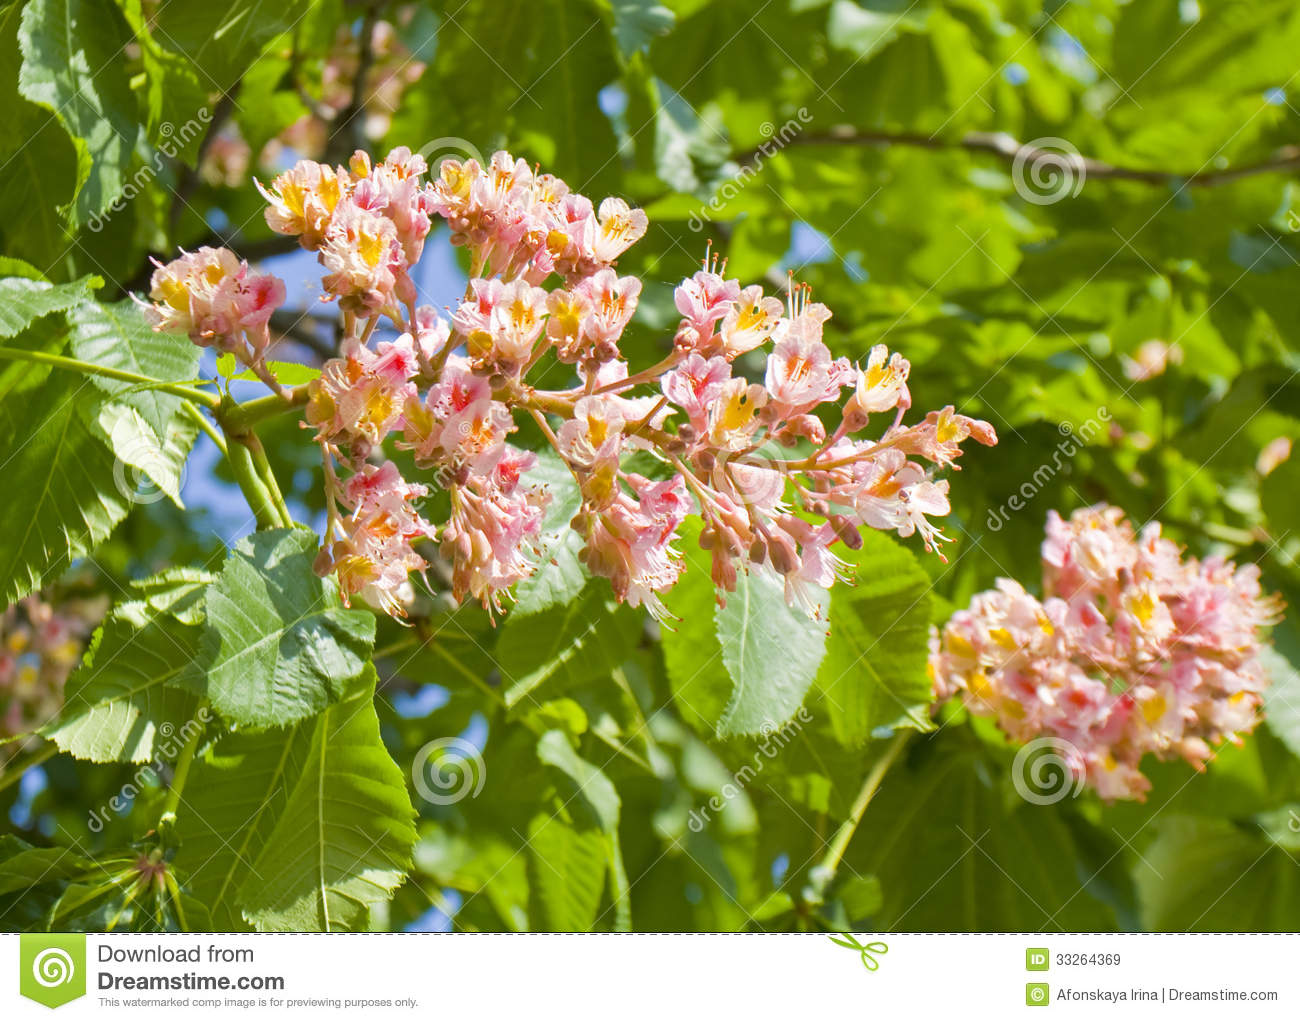 Flower of pink chestnut tree stock image image of botanic flora flower of pink chestnut tree mightylinksfo Gallery